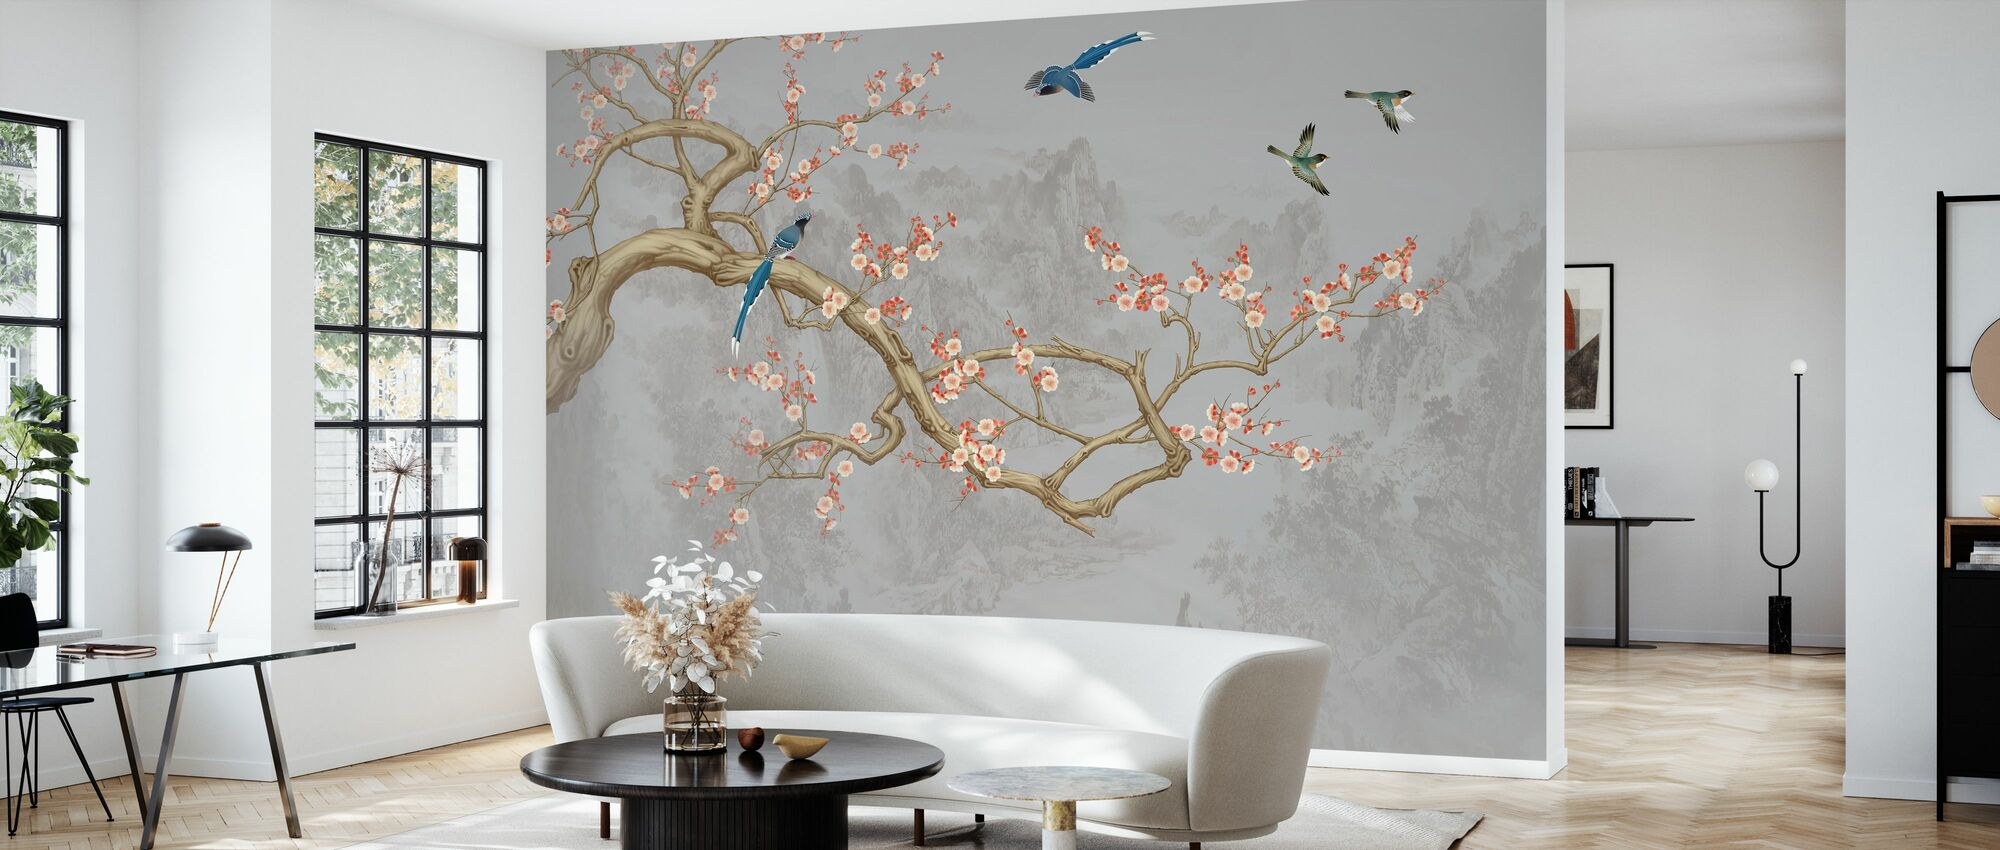 Birds heights - Pearly - Wallpaper - Living Room